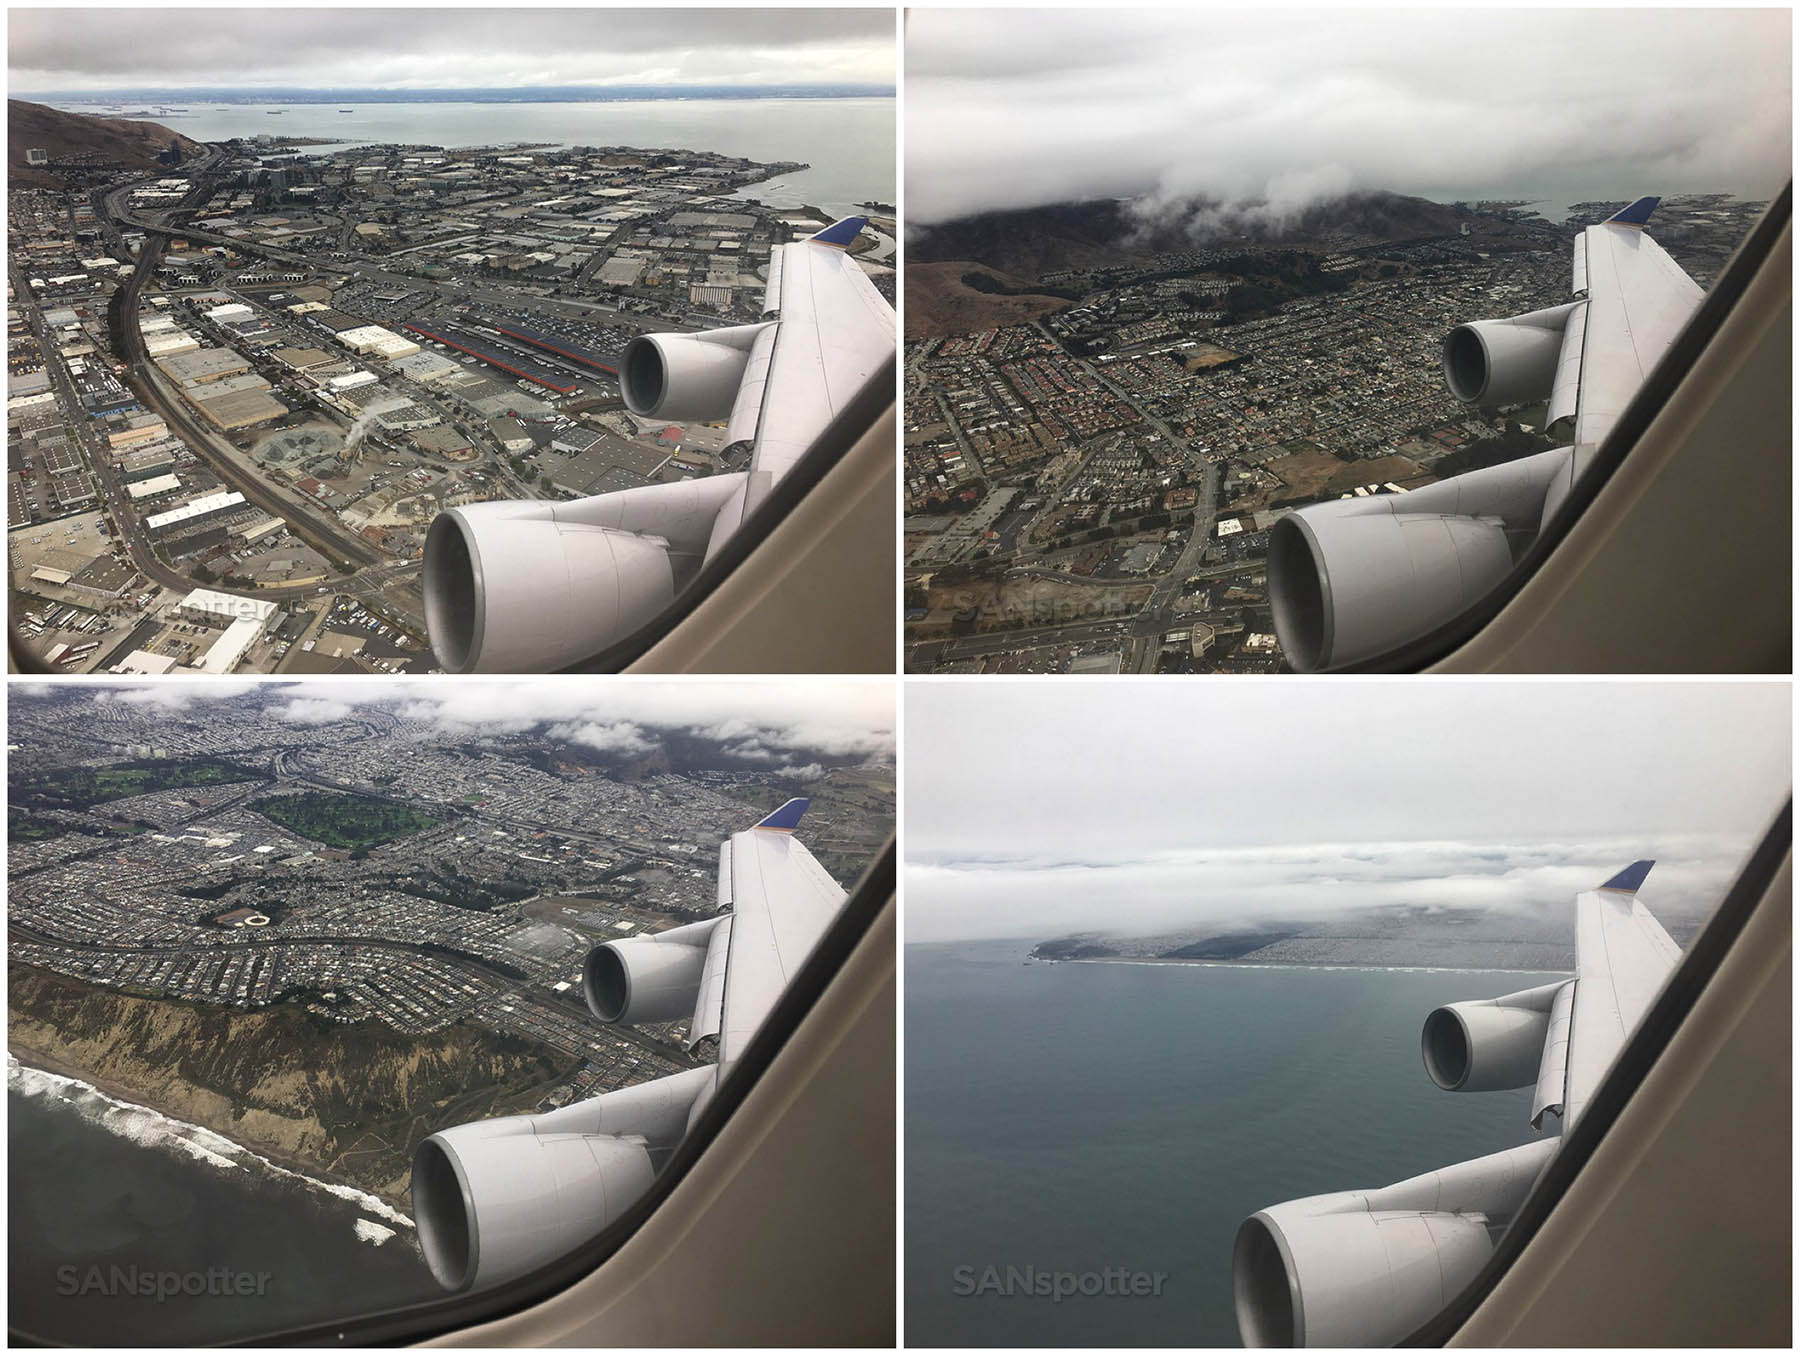 Taking off from San Francisco united 747